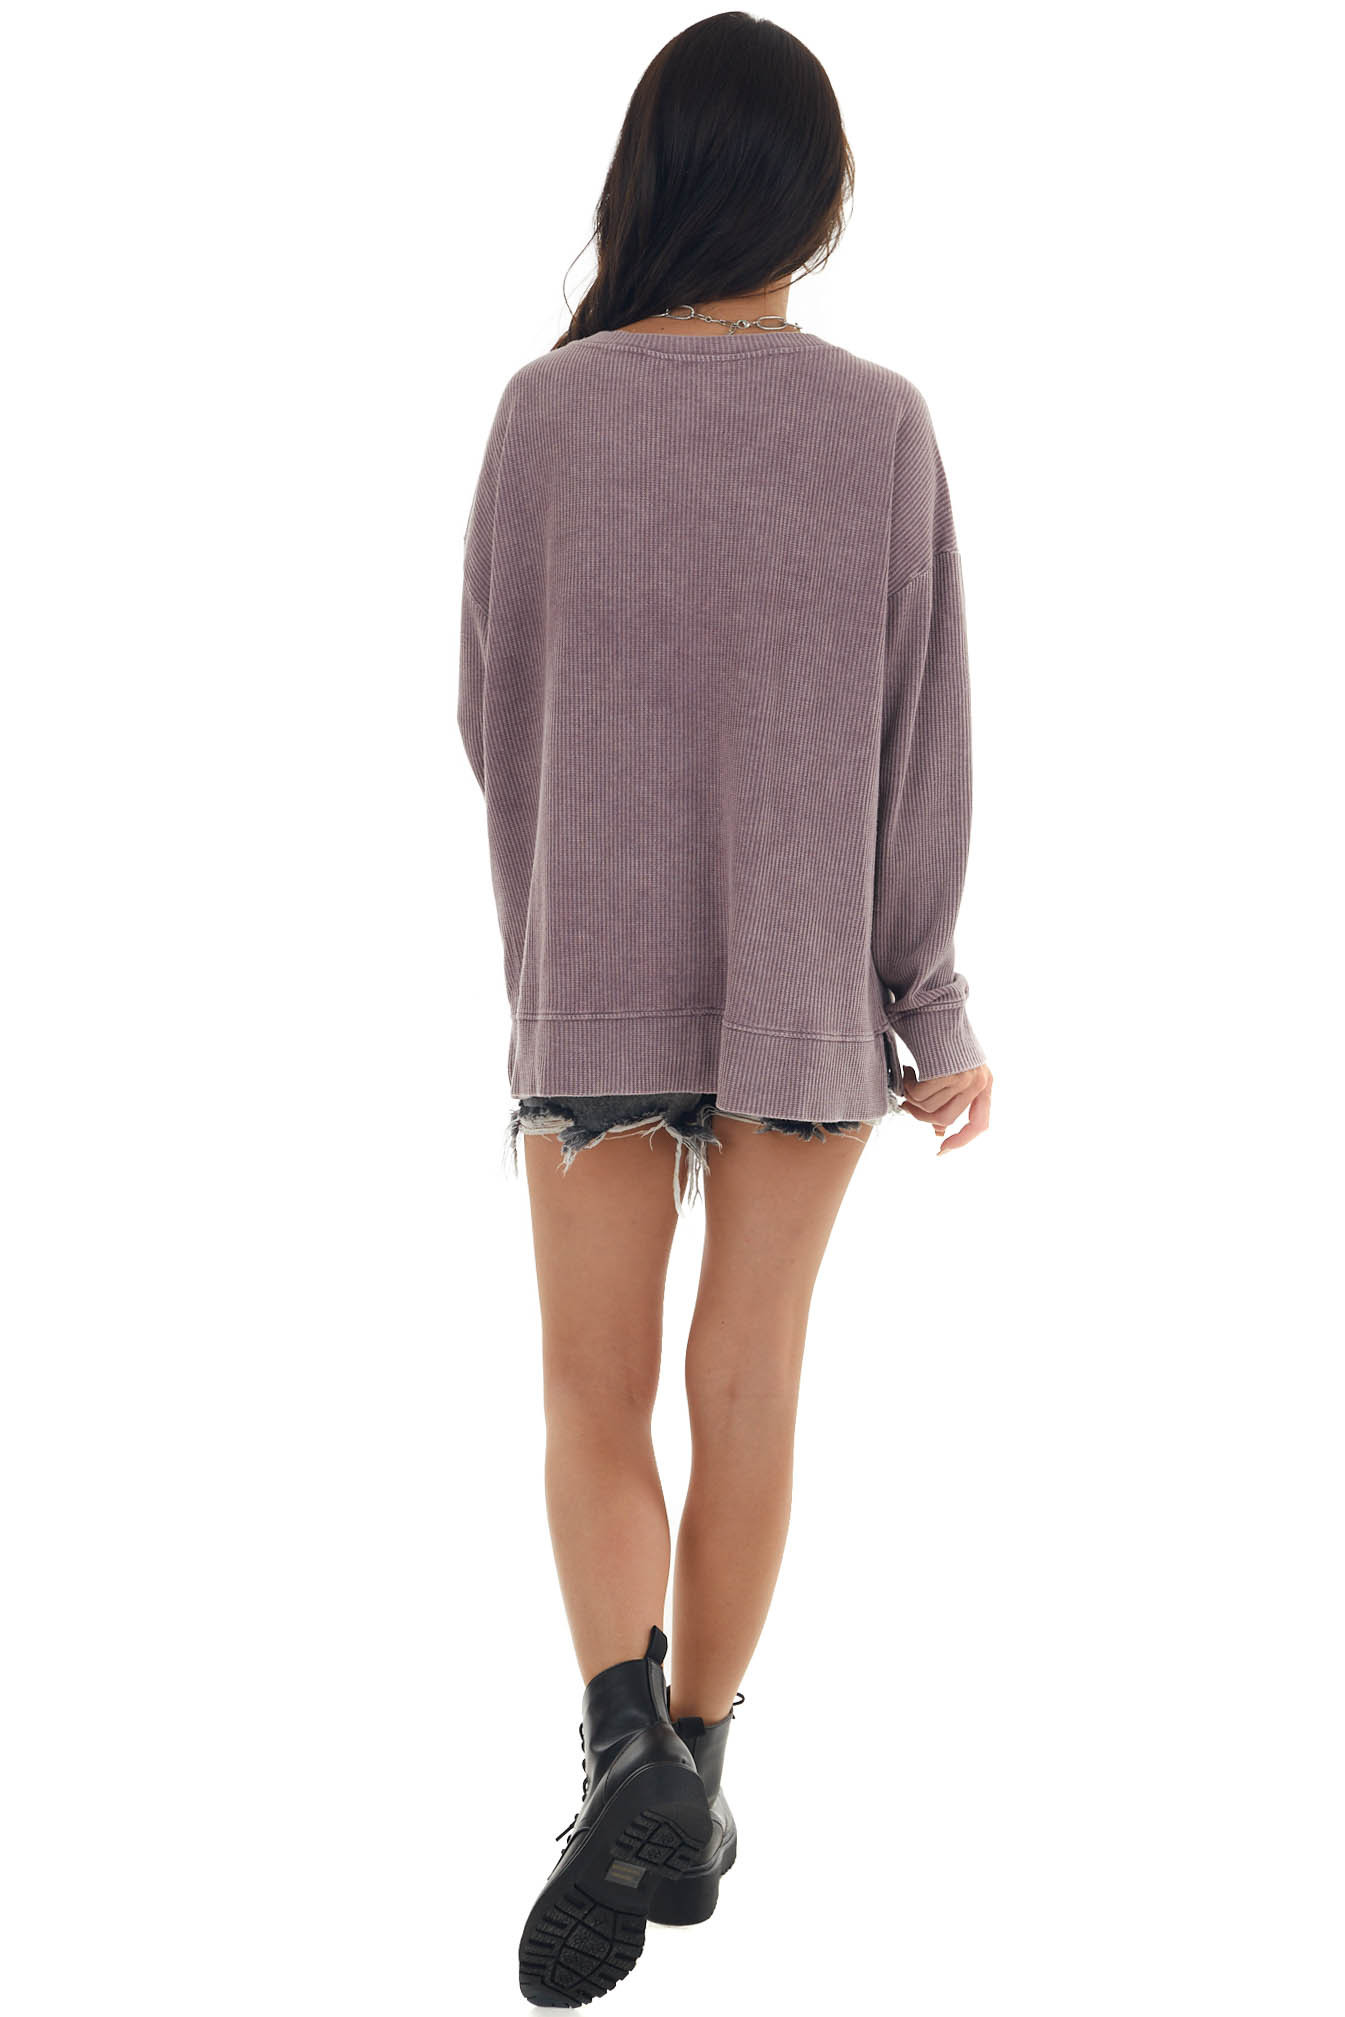 Mauve Mineral Washed Knit Tunic Top